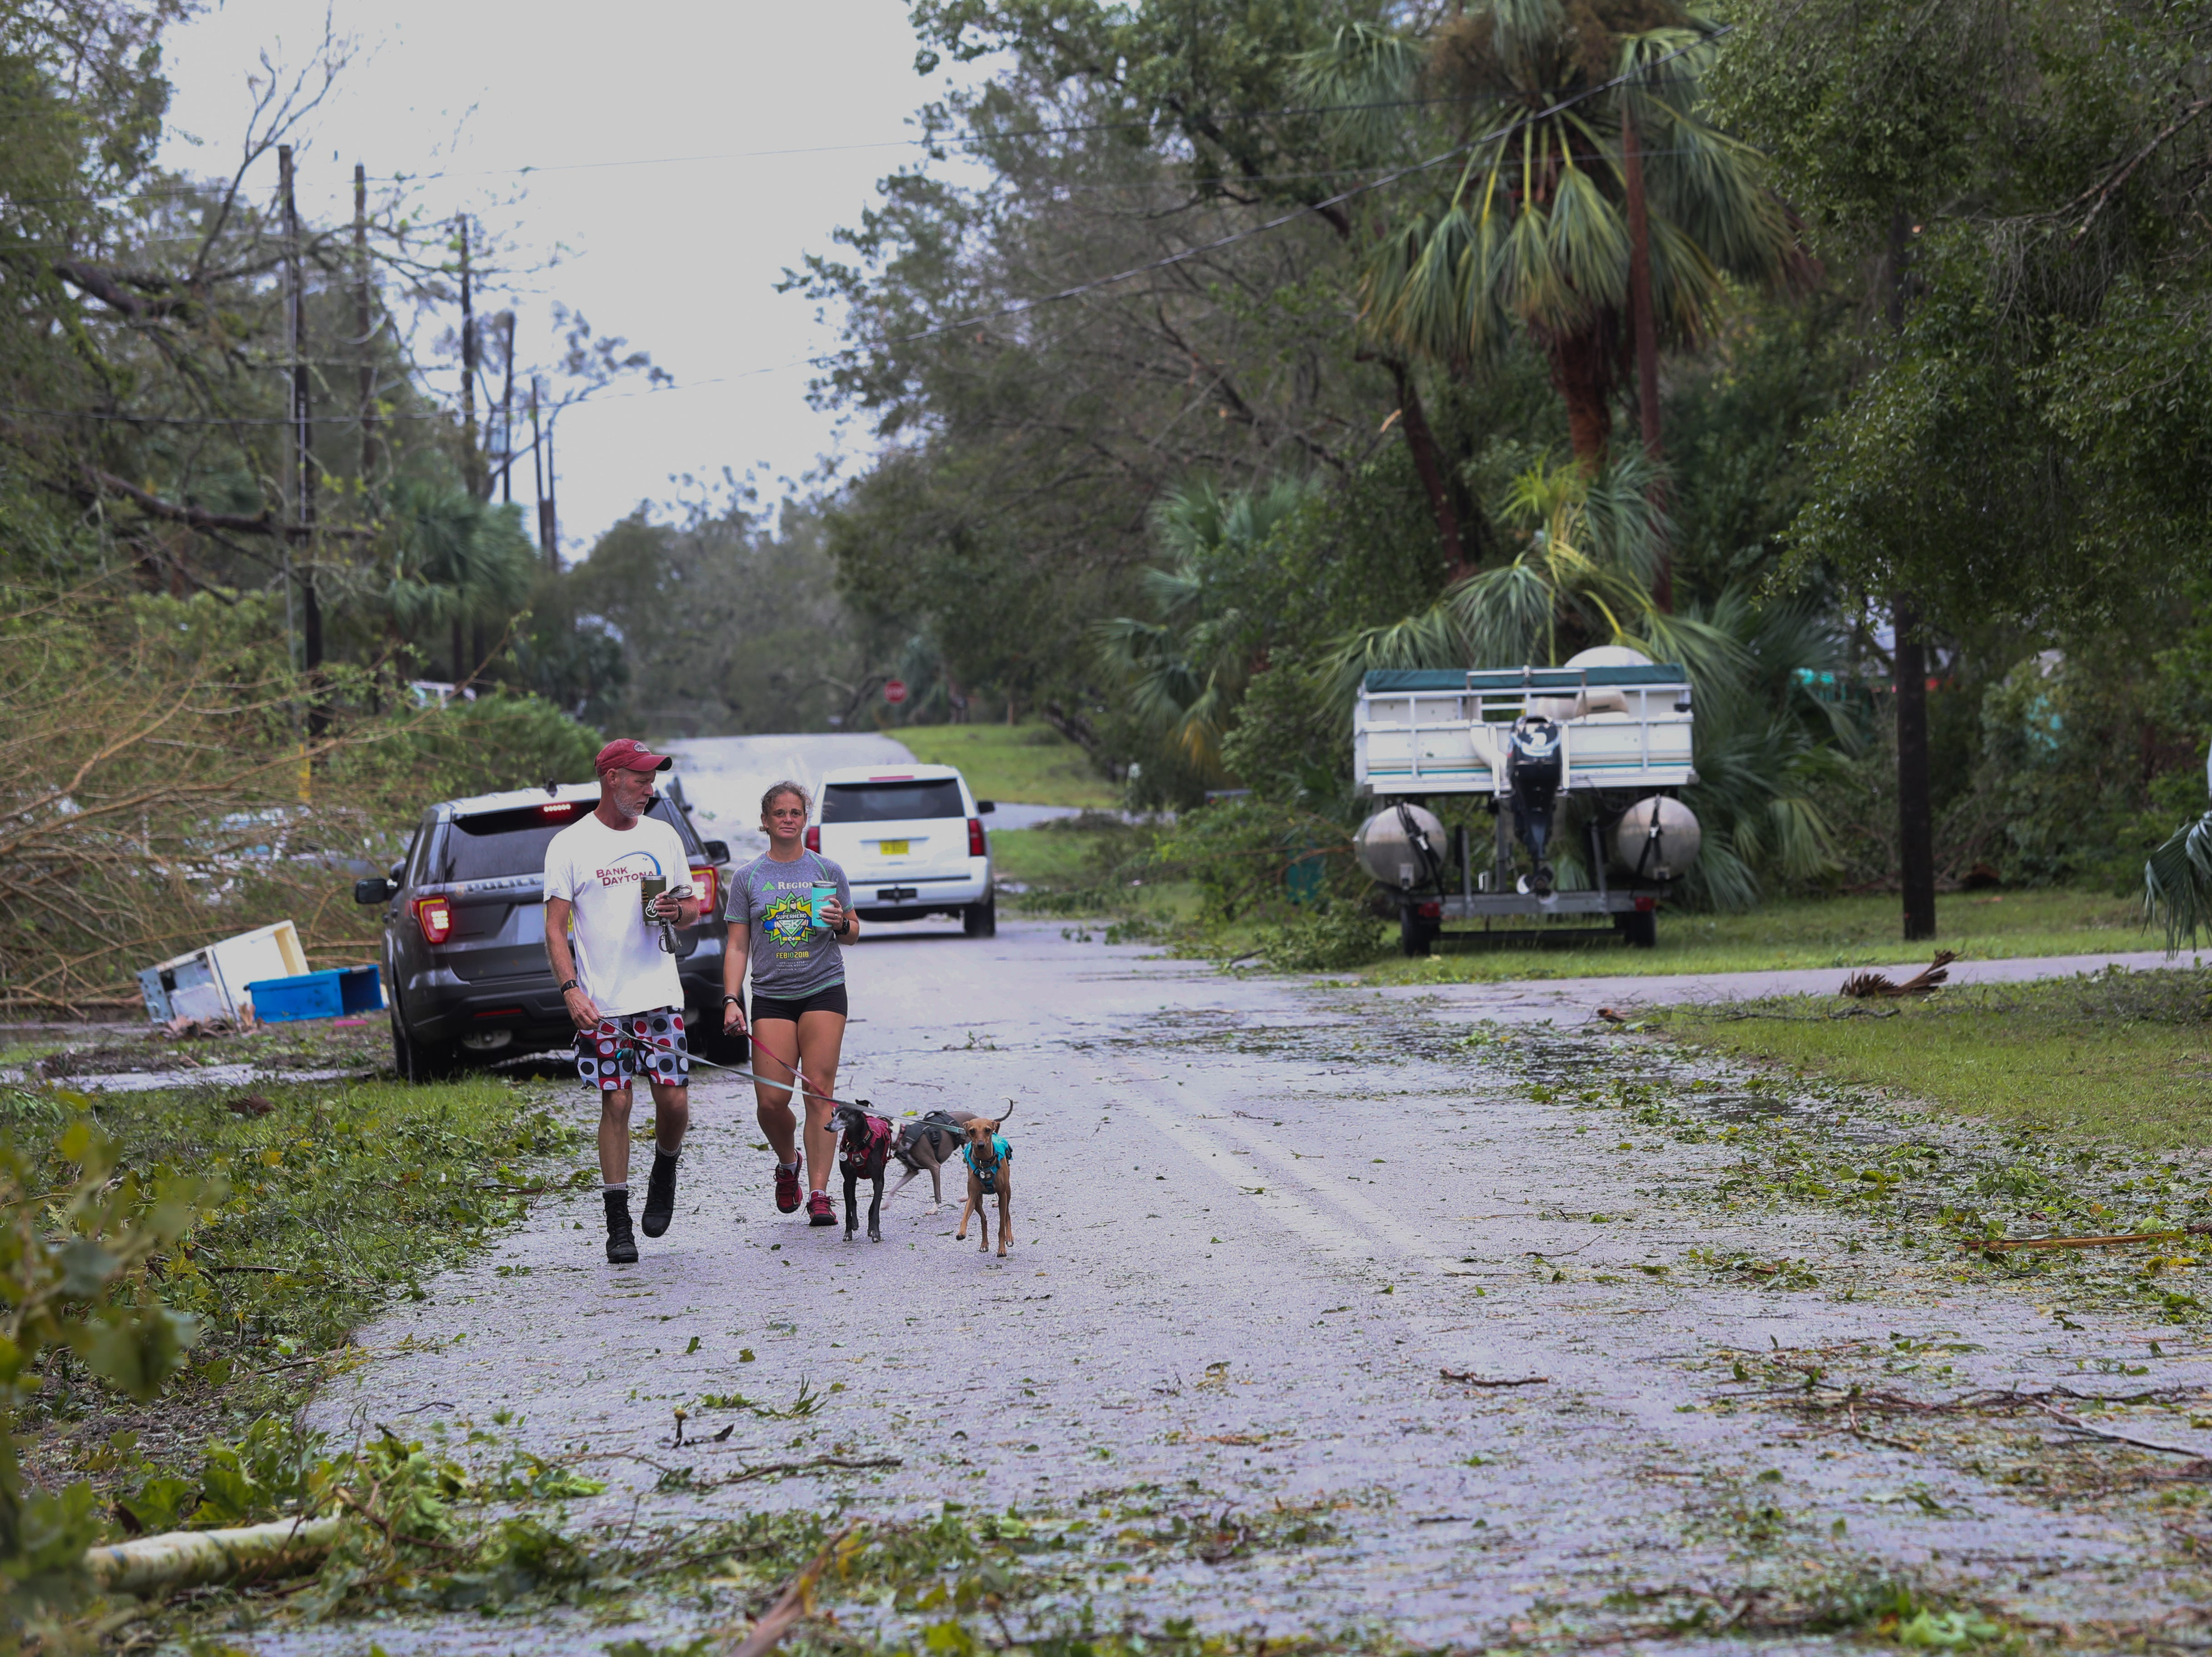 Bobby and Eden Keene walk their dogs after Hurricane Michael in Apalachicola, Fla. Wednesday, Oct. 10, 2018.